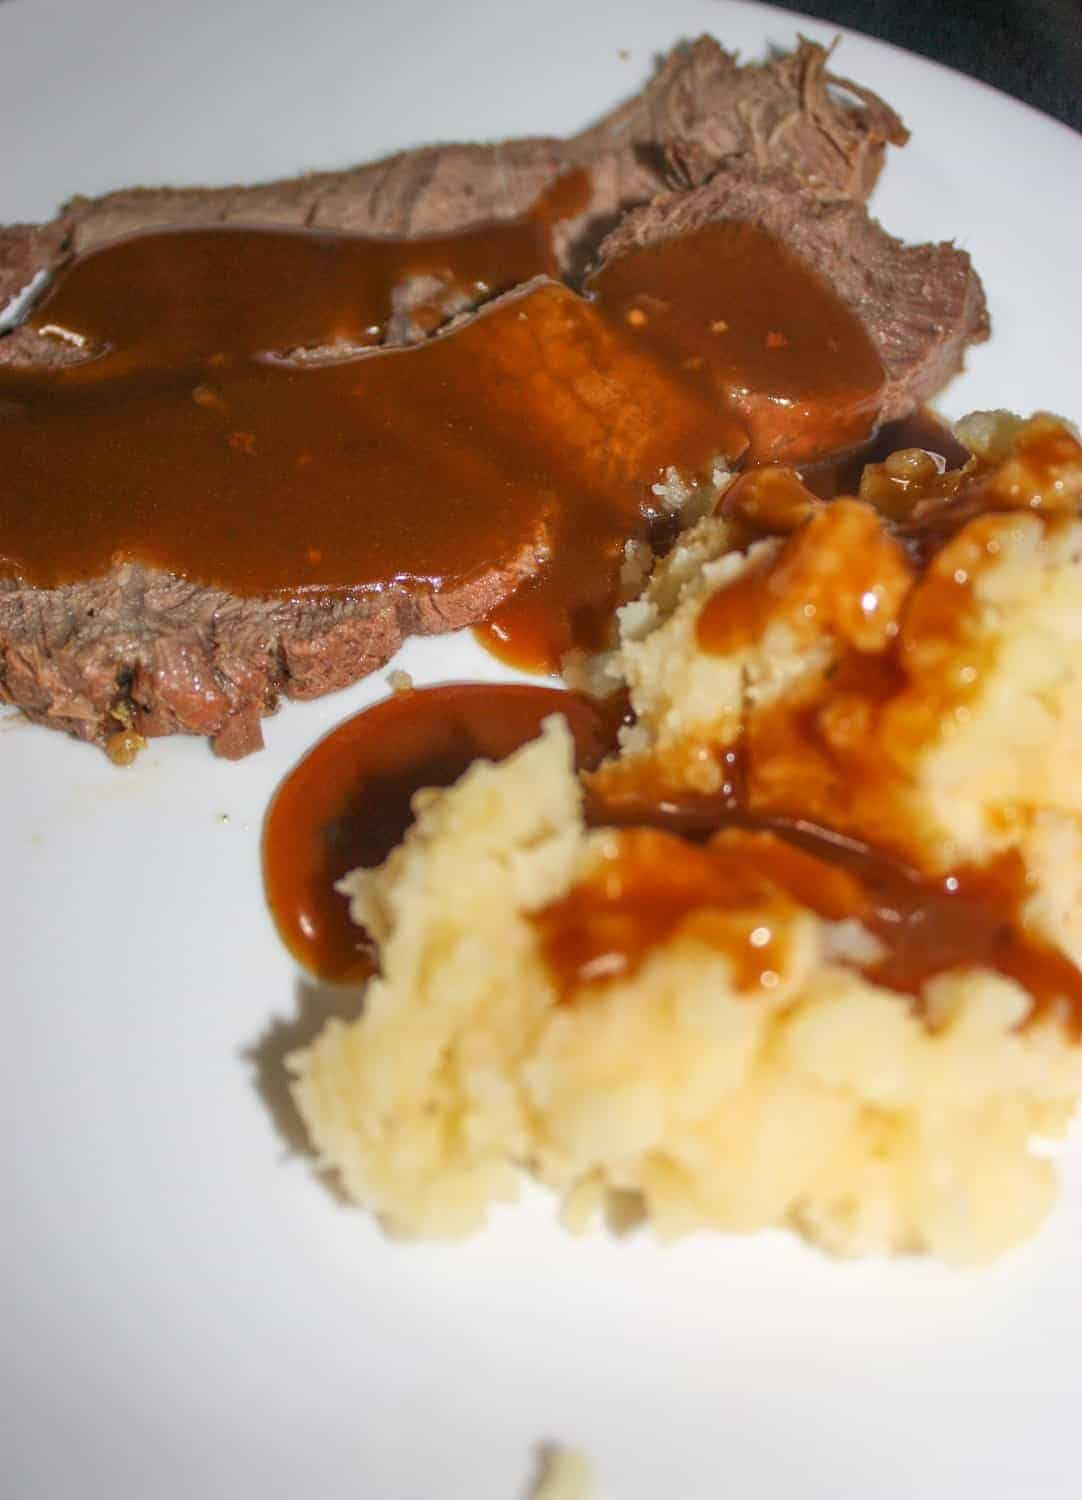 Sunday dinners can be made any day of the week when you have an Instant Pot.  Try out this Instant Pot Sirloin Roast with Mashed Potatoes and people will think you have been cooking for hours!